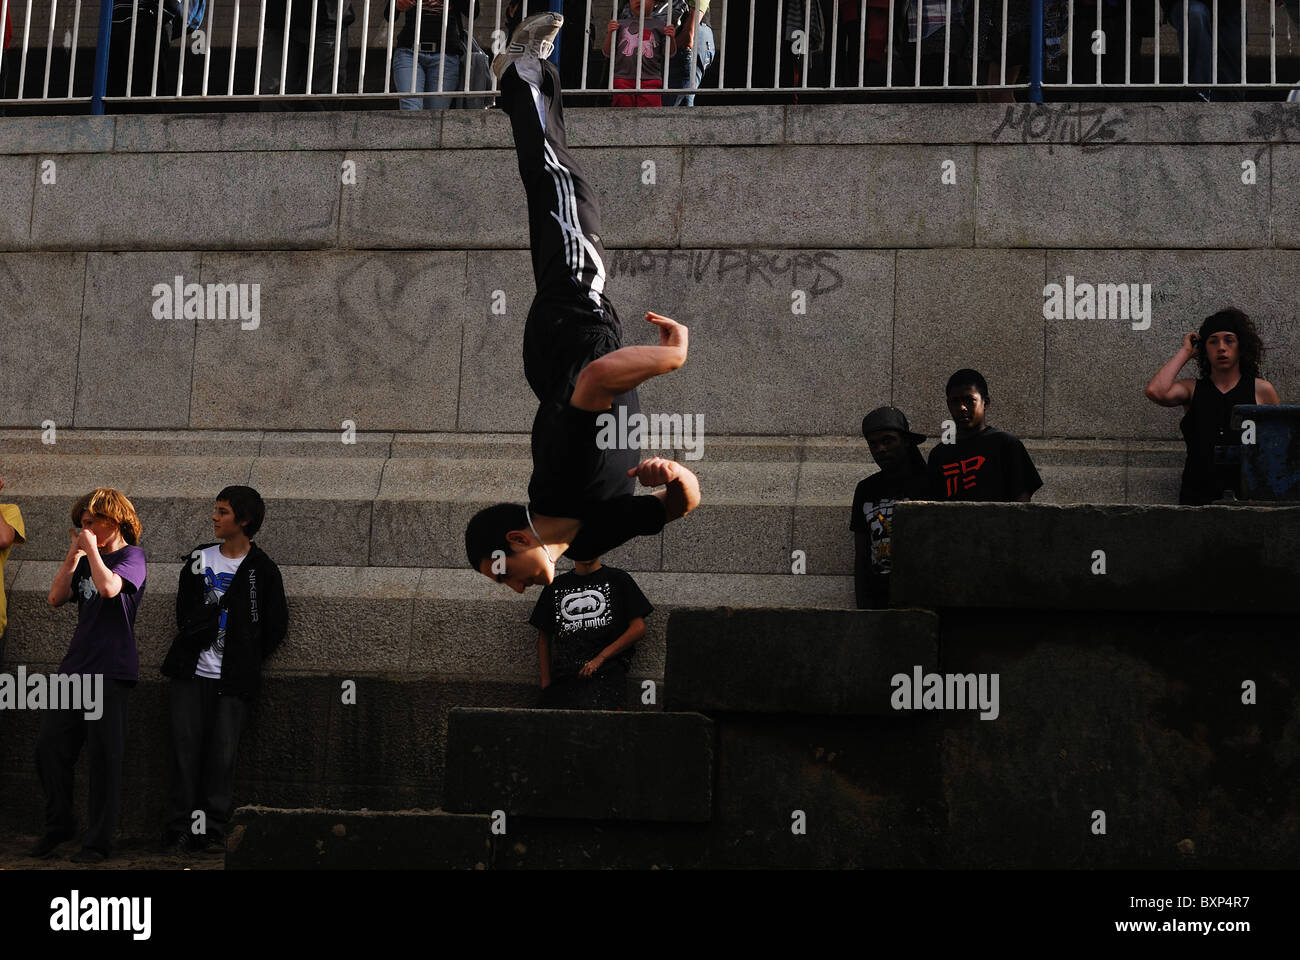 Traceur practicing the art of Parkour doing flip from steps along bank of River Thames in London. - Stock Image